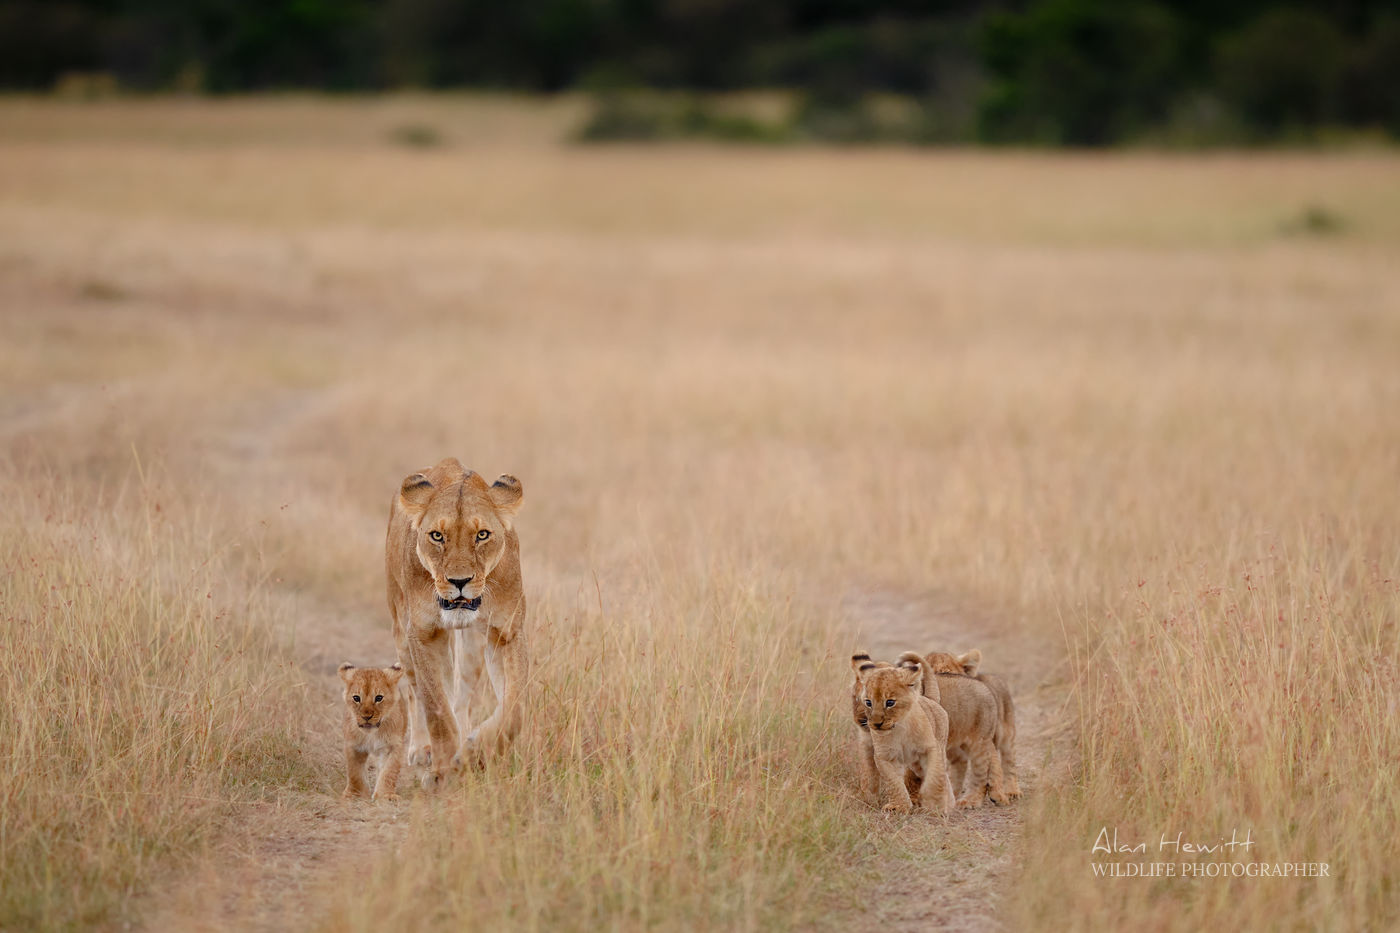 Lioness and cubs returning to the pride Alan Hewitt Photography